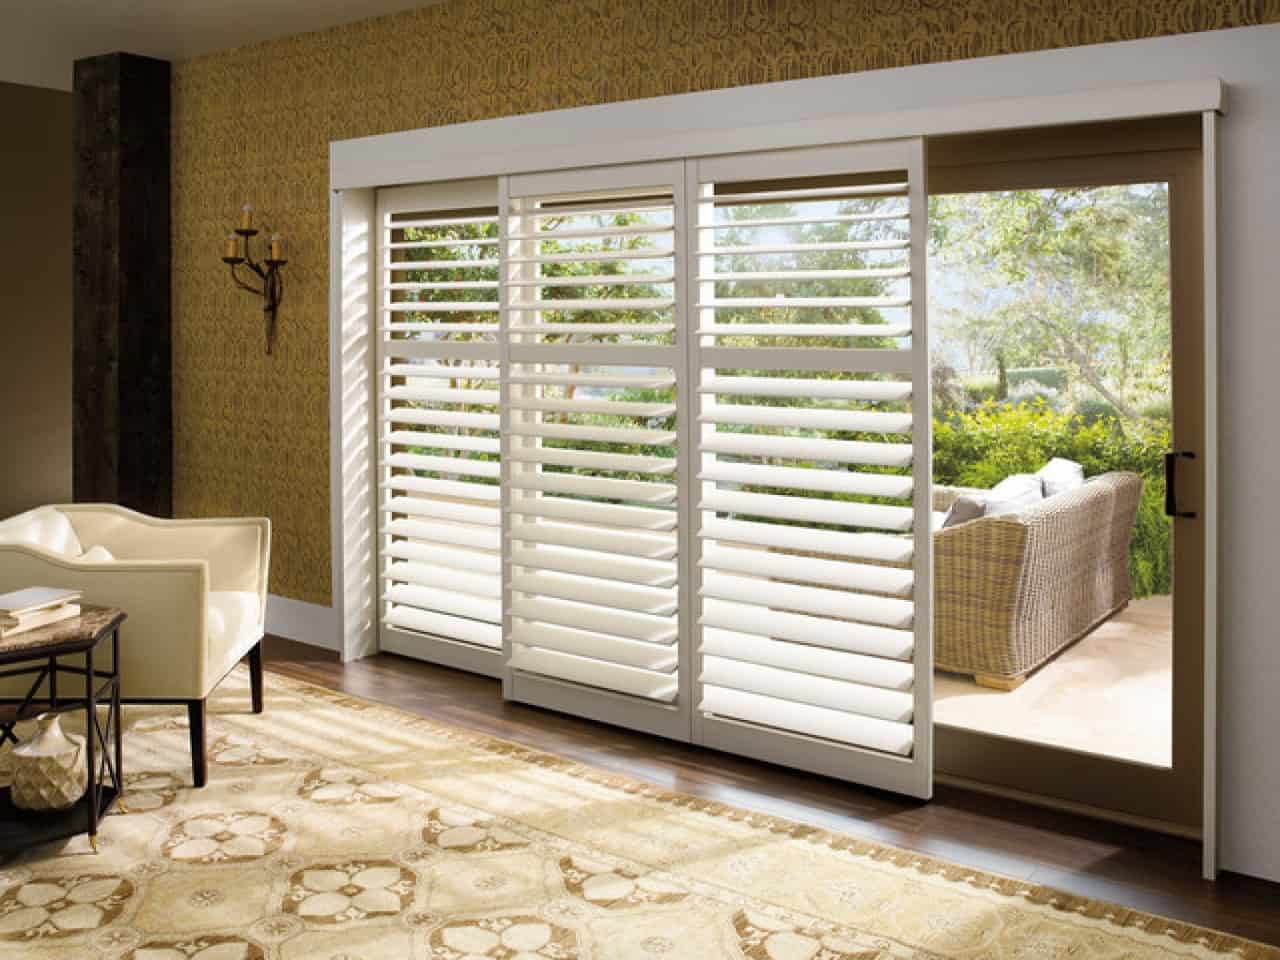 plantation shutters for sliding glass patio doors - Window Treatments For Sliding Glass Doors (IDEAS & TIPS)